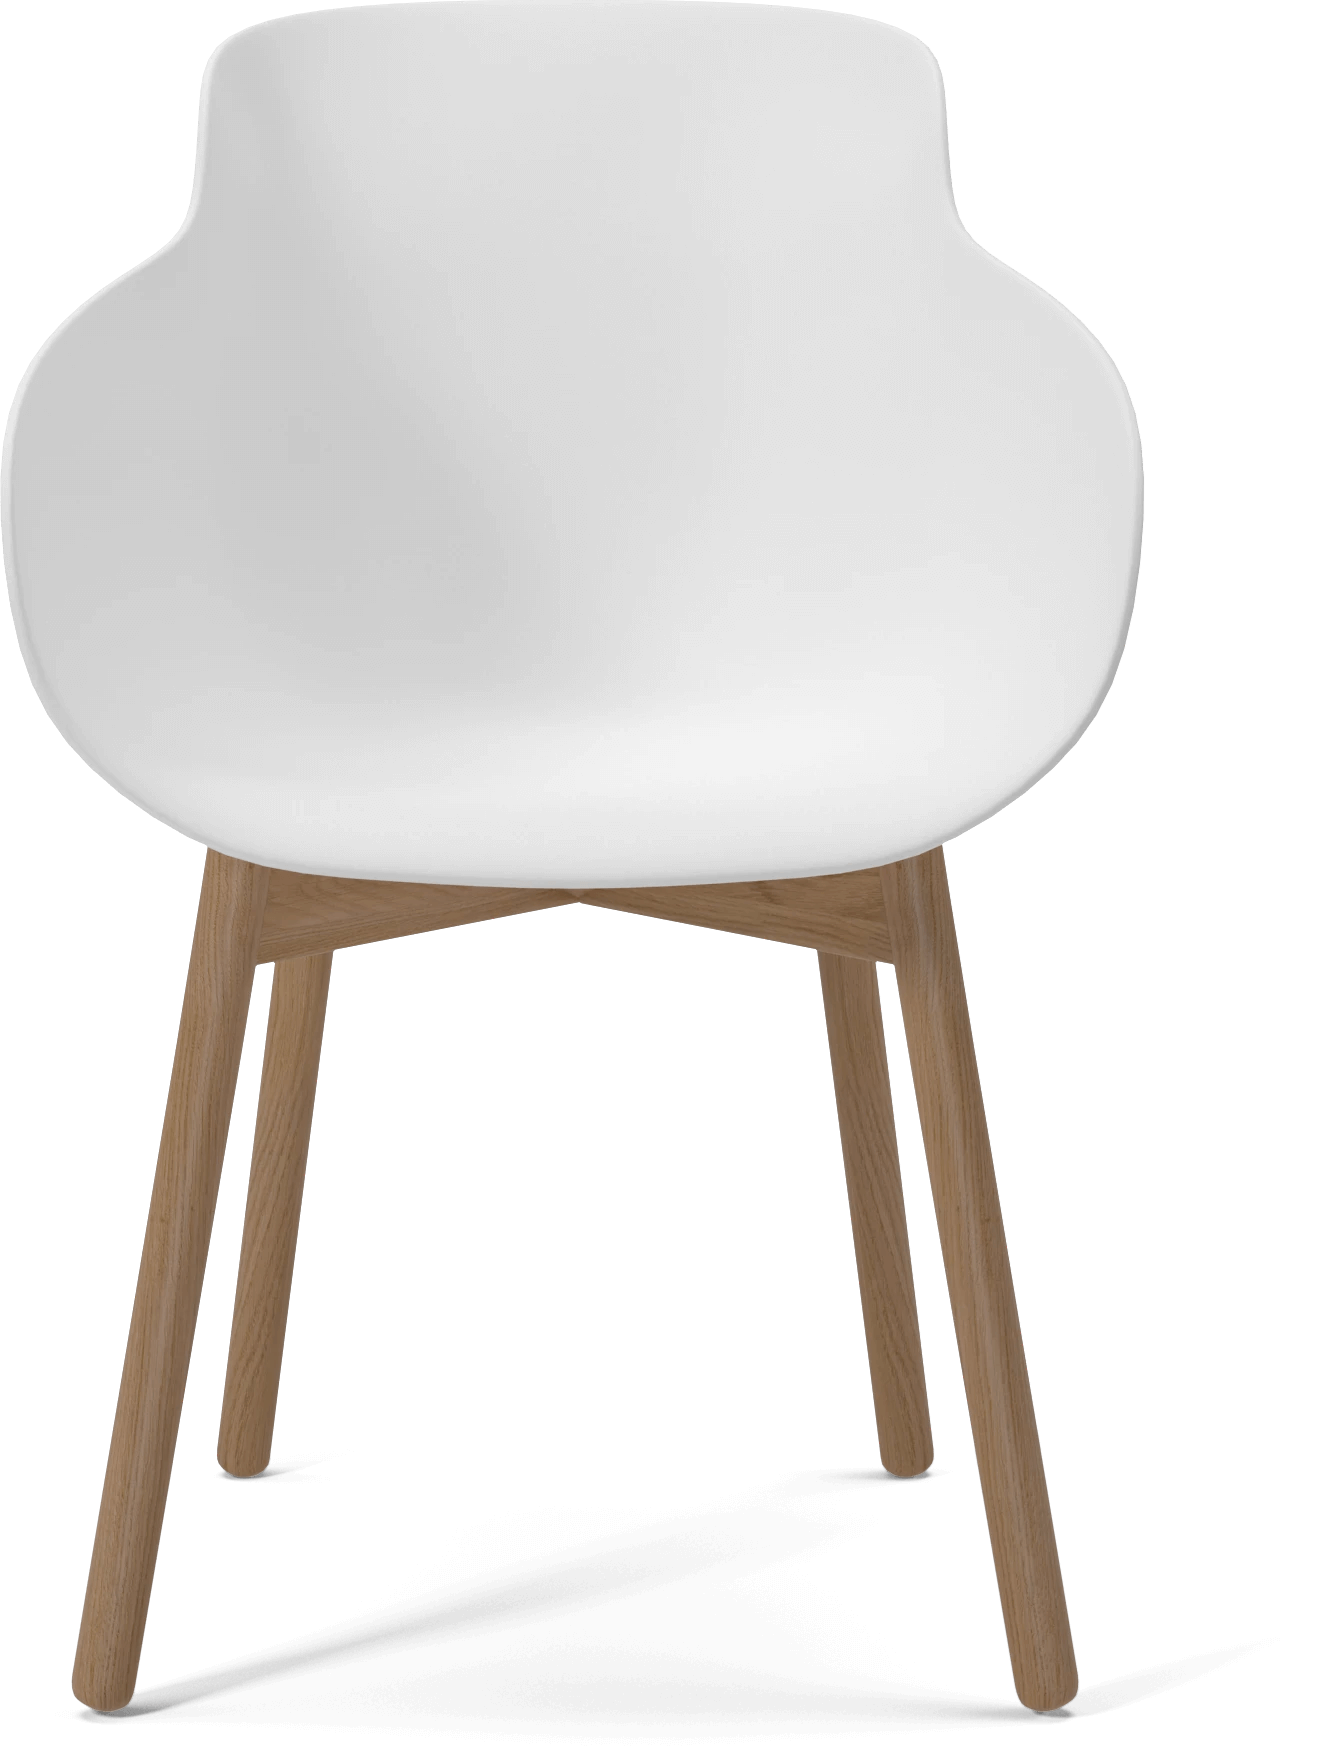 The Hug dining chair, white / wood by Bolia boasts a frame finish in ...